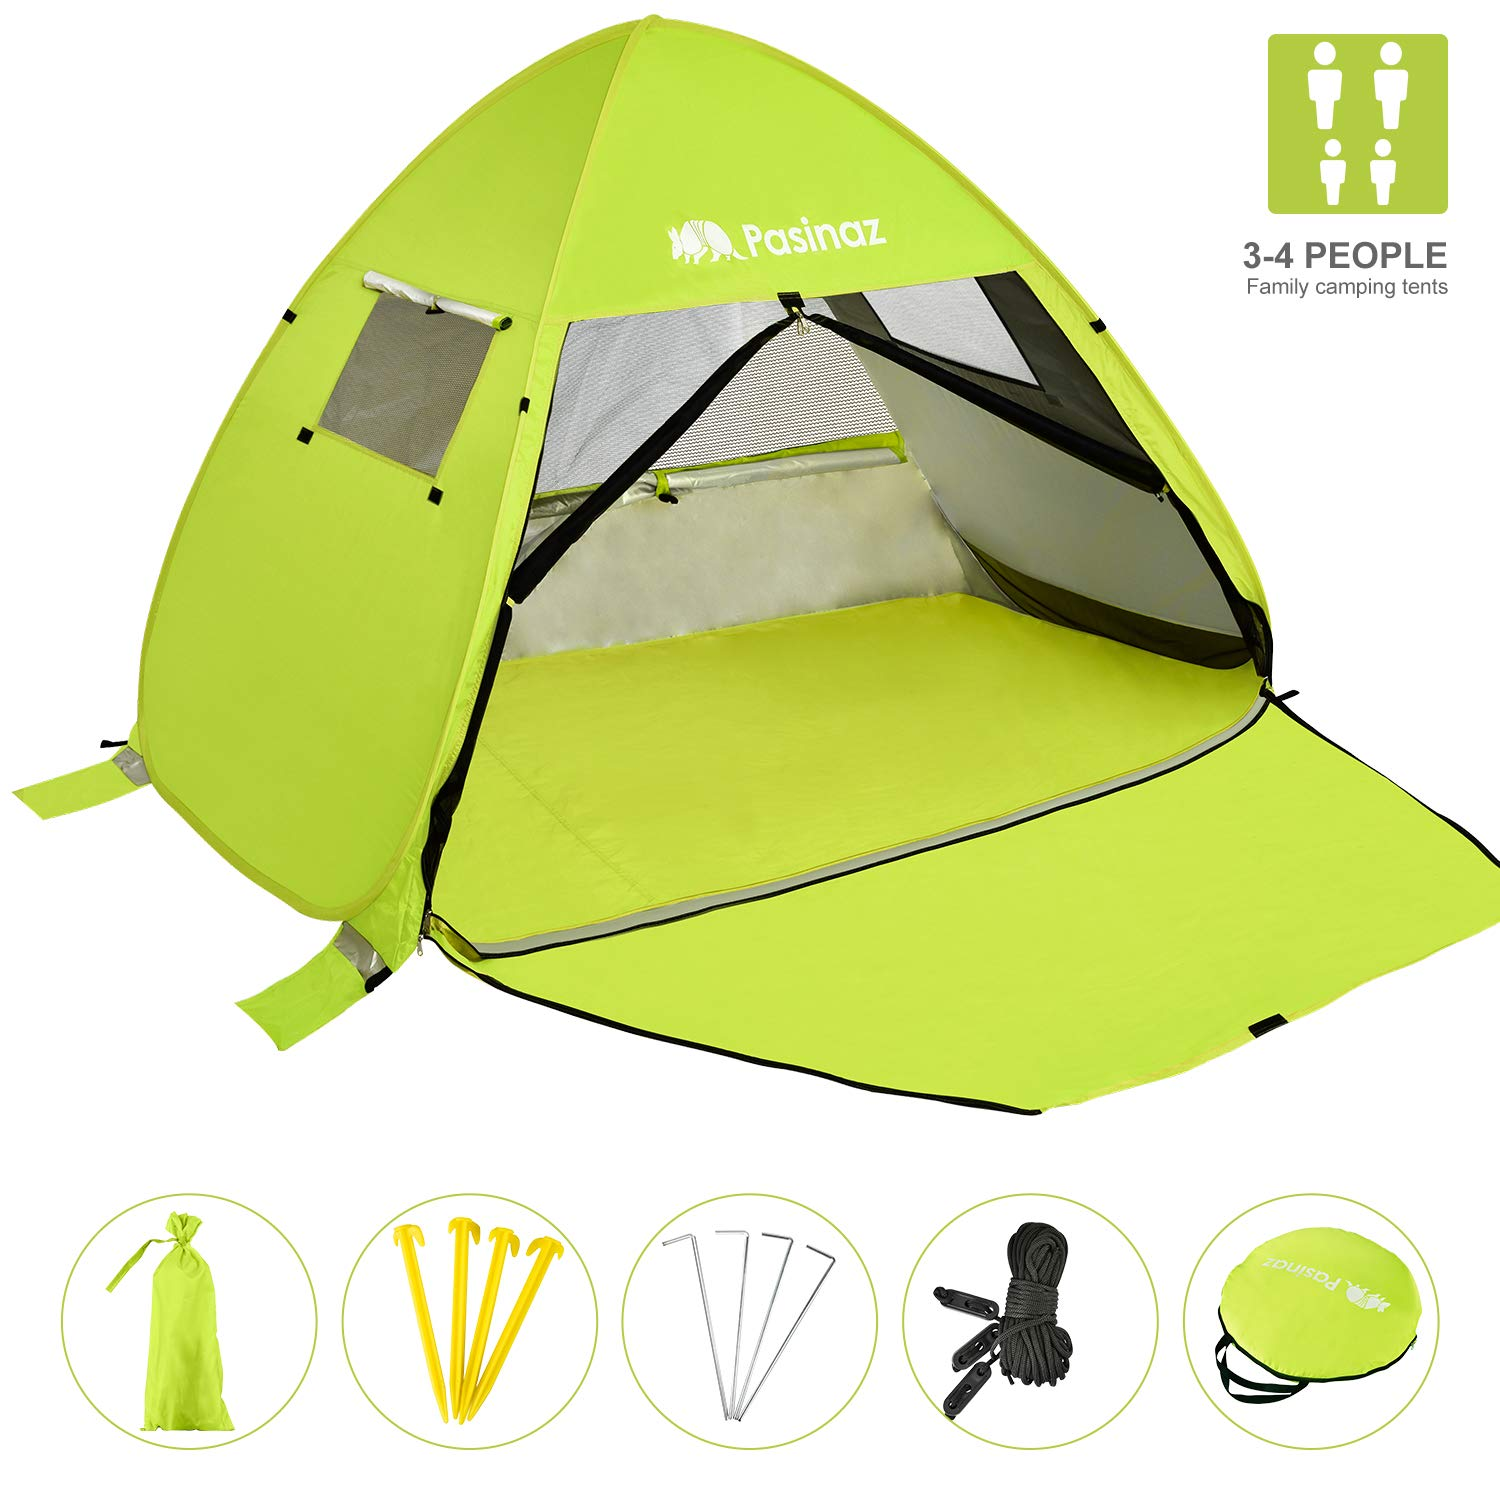 Pasinaz Pop Up Tent 3-4 People Family Beach Tent Camping Shelter Anti UV Sun Shade Outdoor Cabana Green by Pasinaz